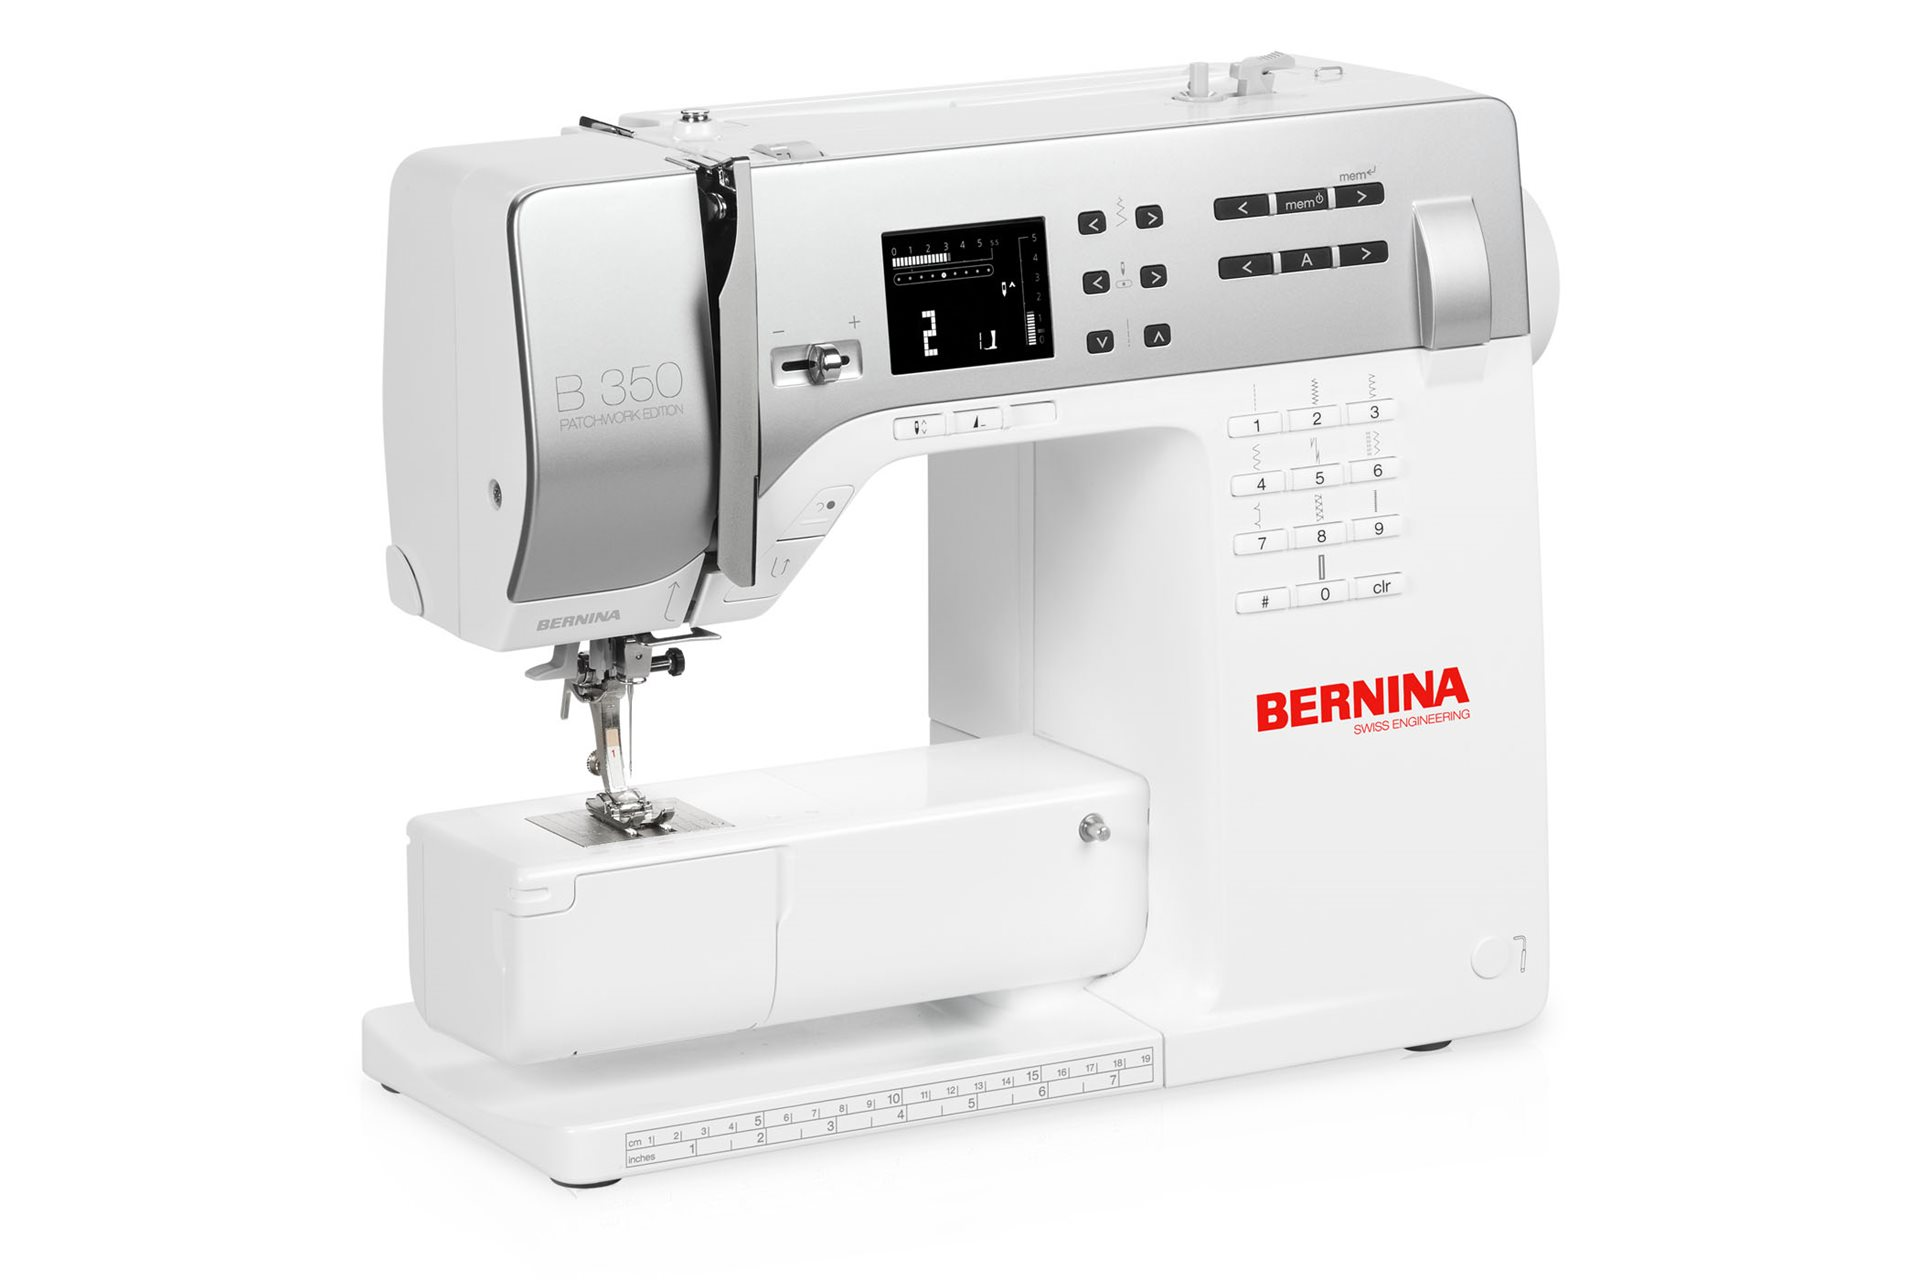 bernina 350 pe support bernina